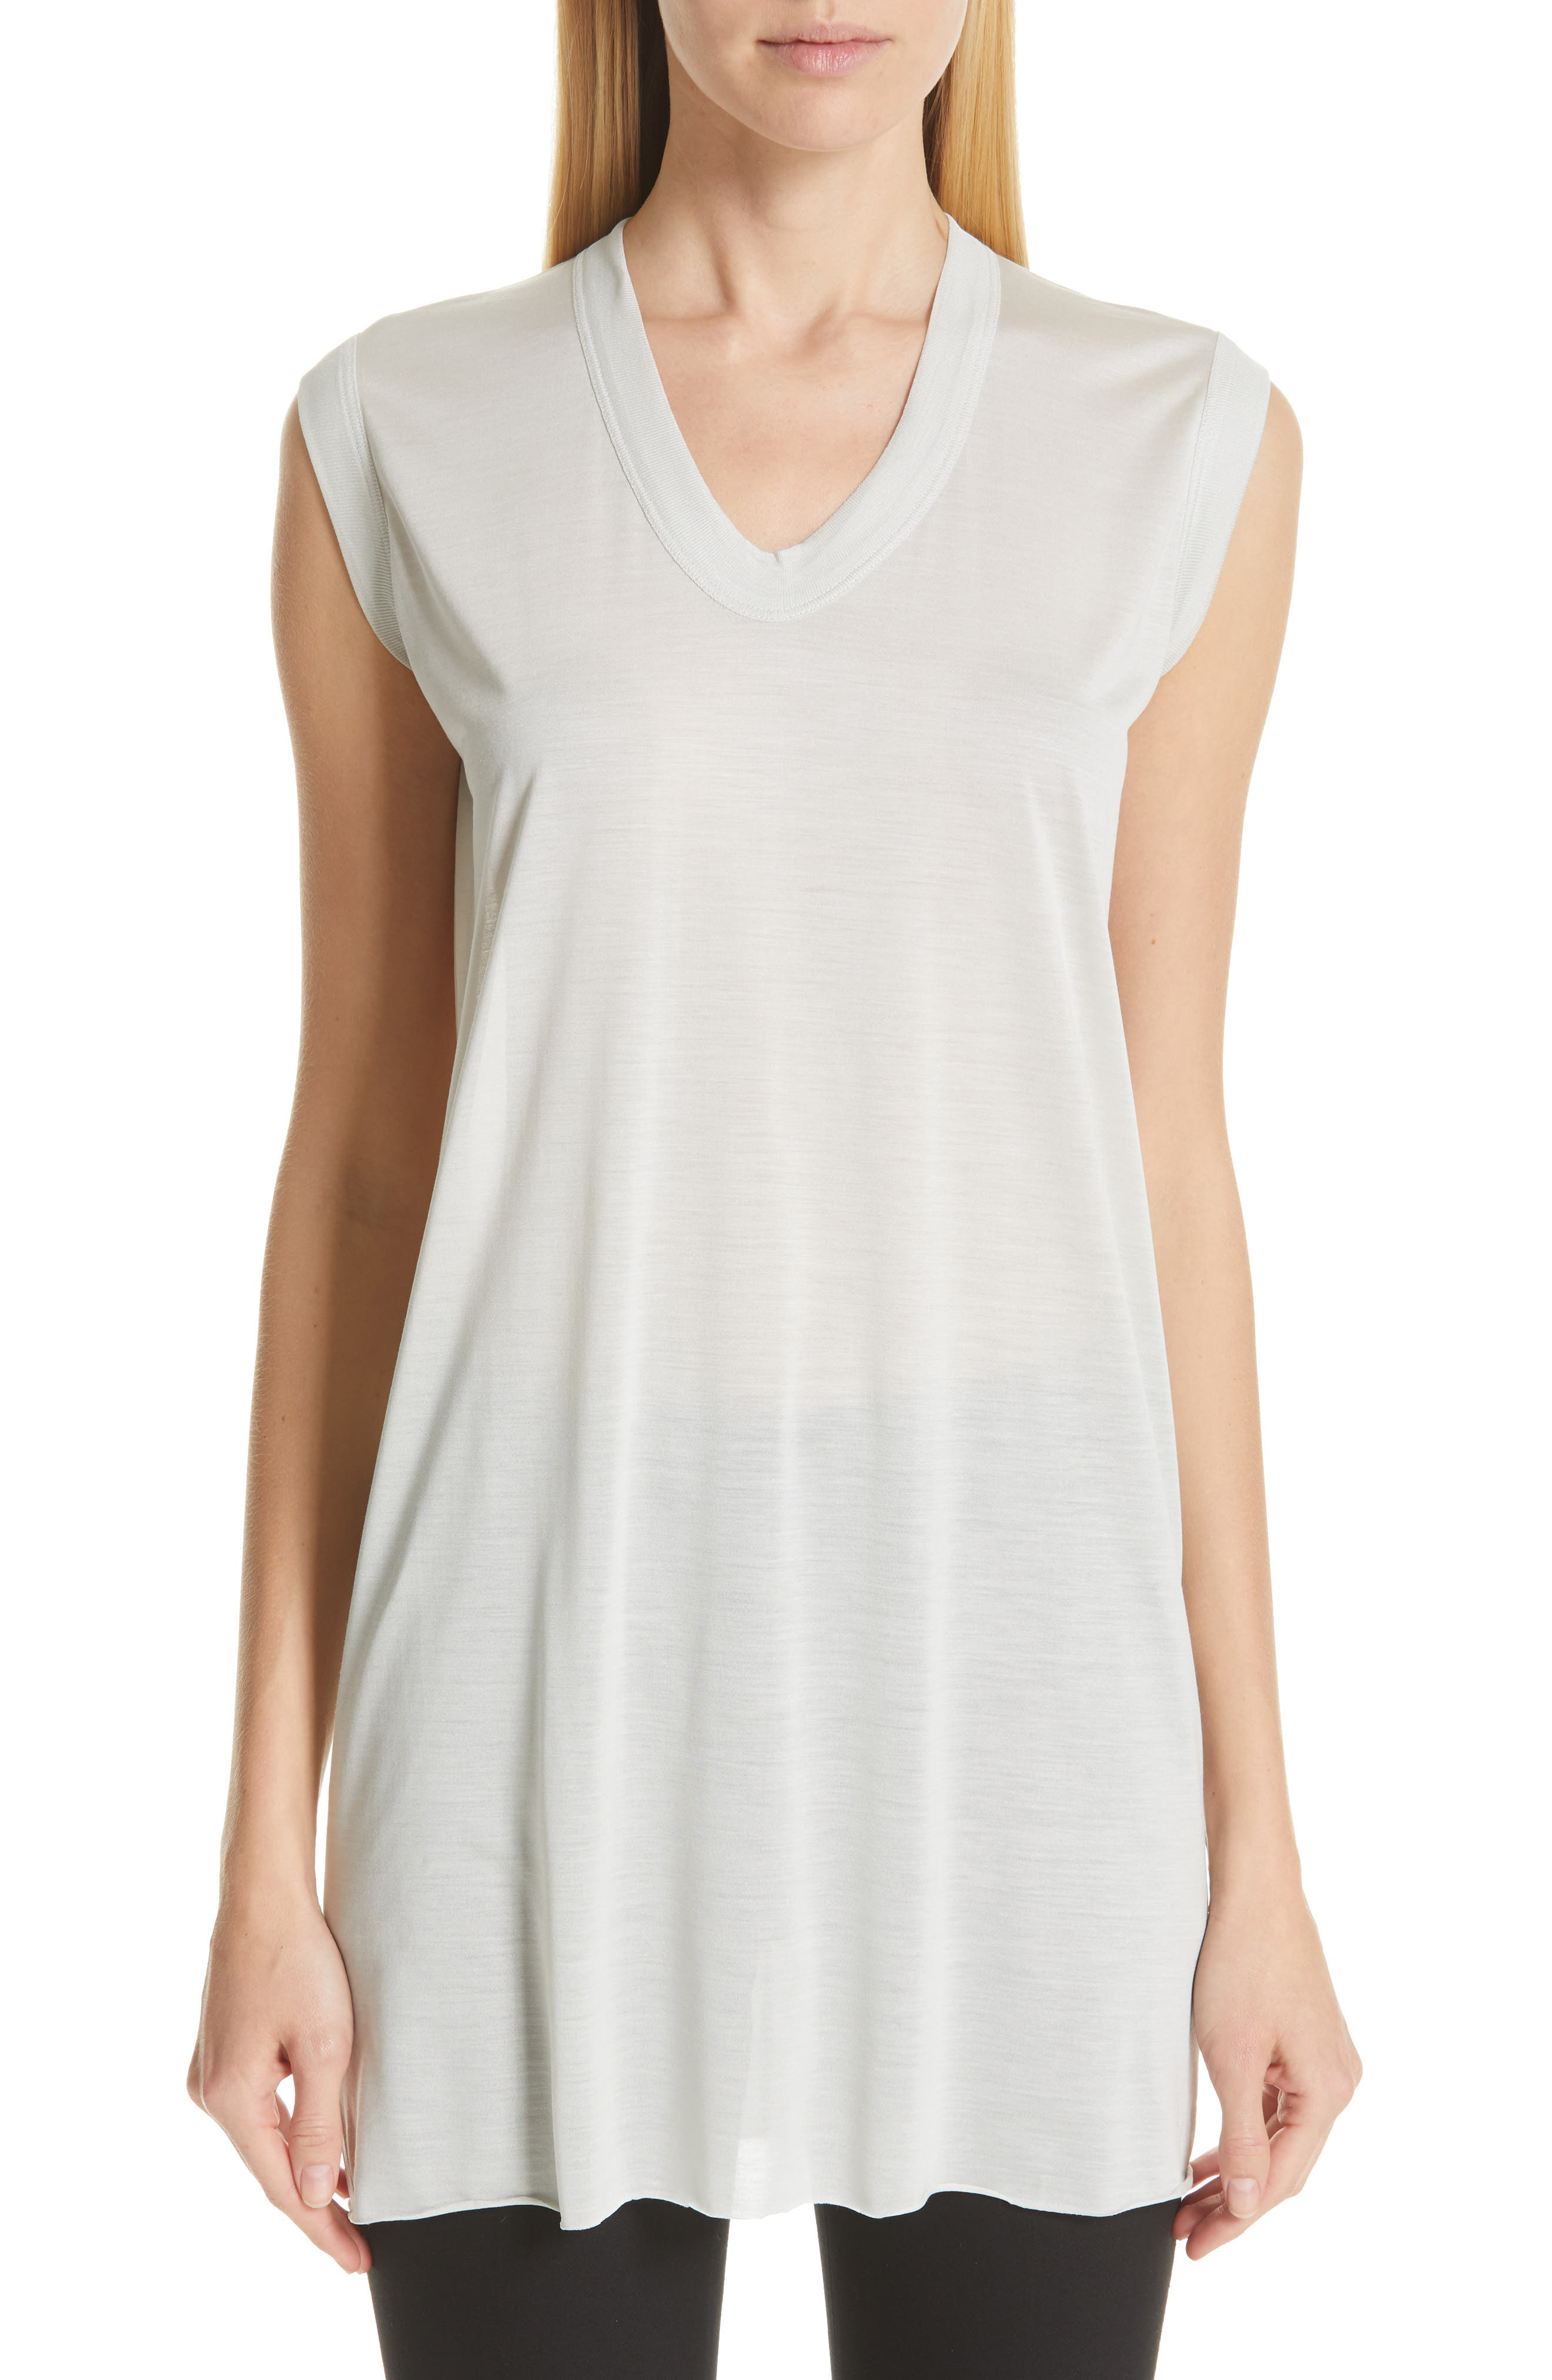 RICK OWENS Silk Jersey Tee, Main, color, OYSTER